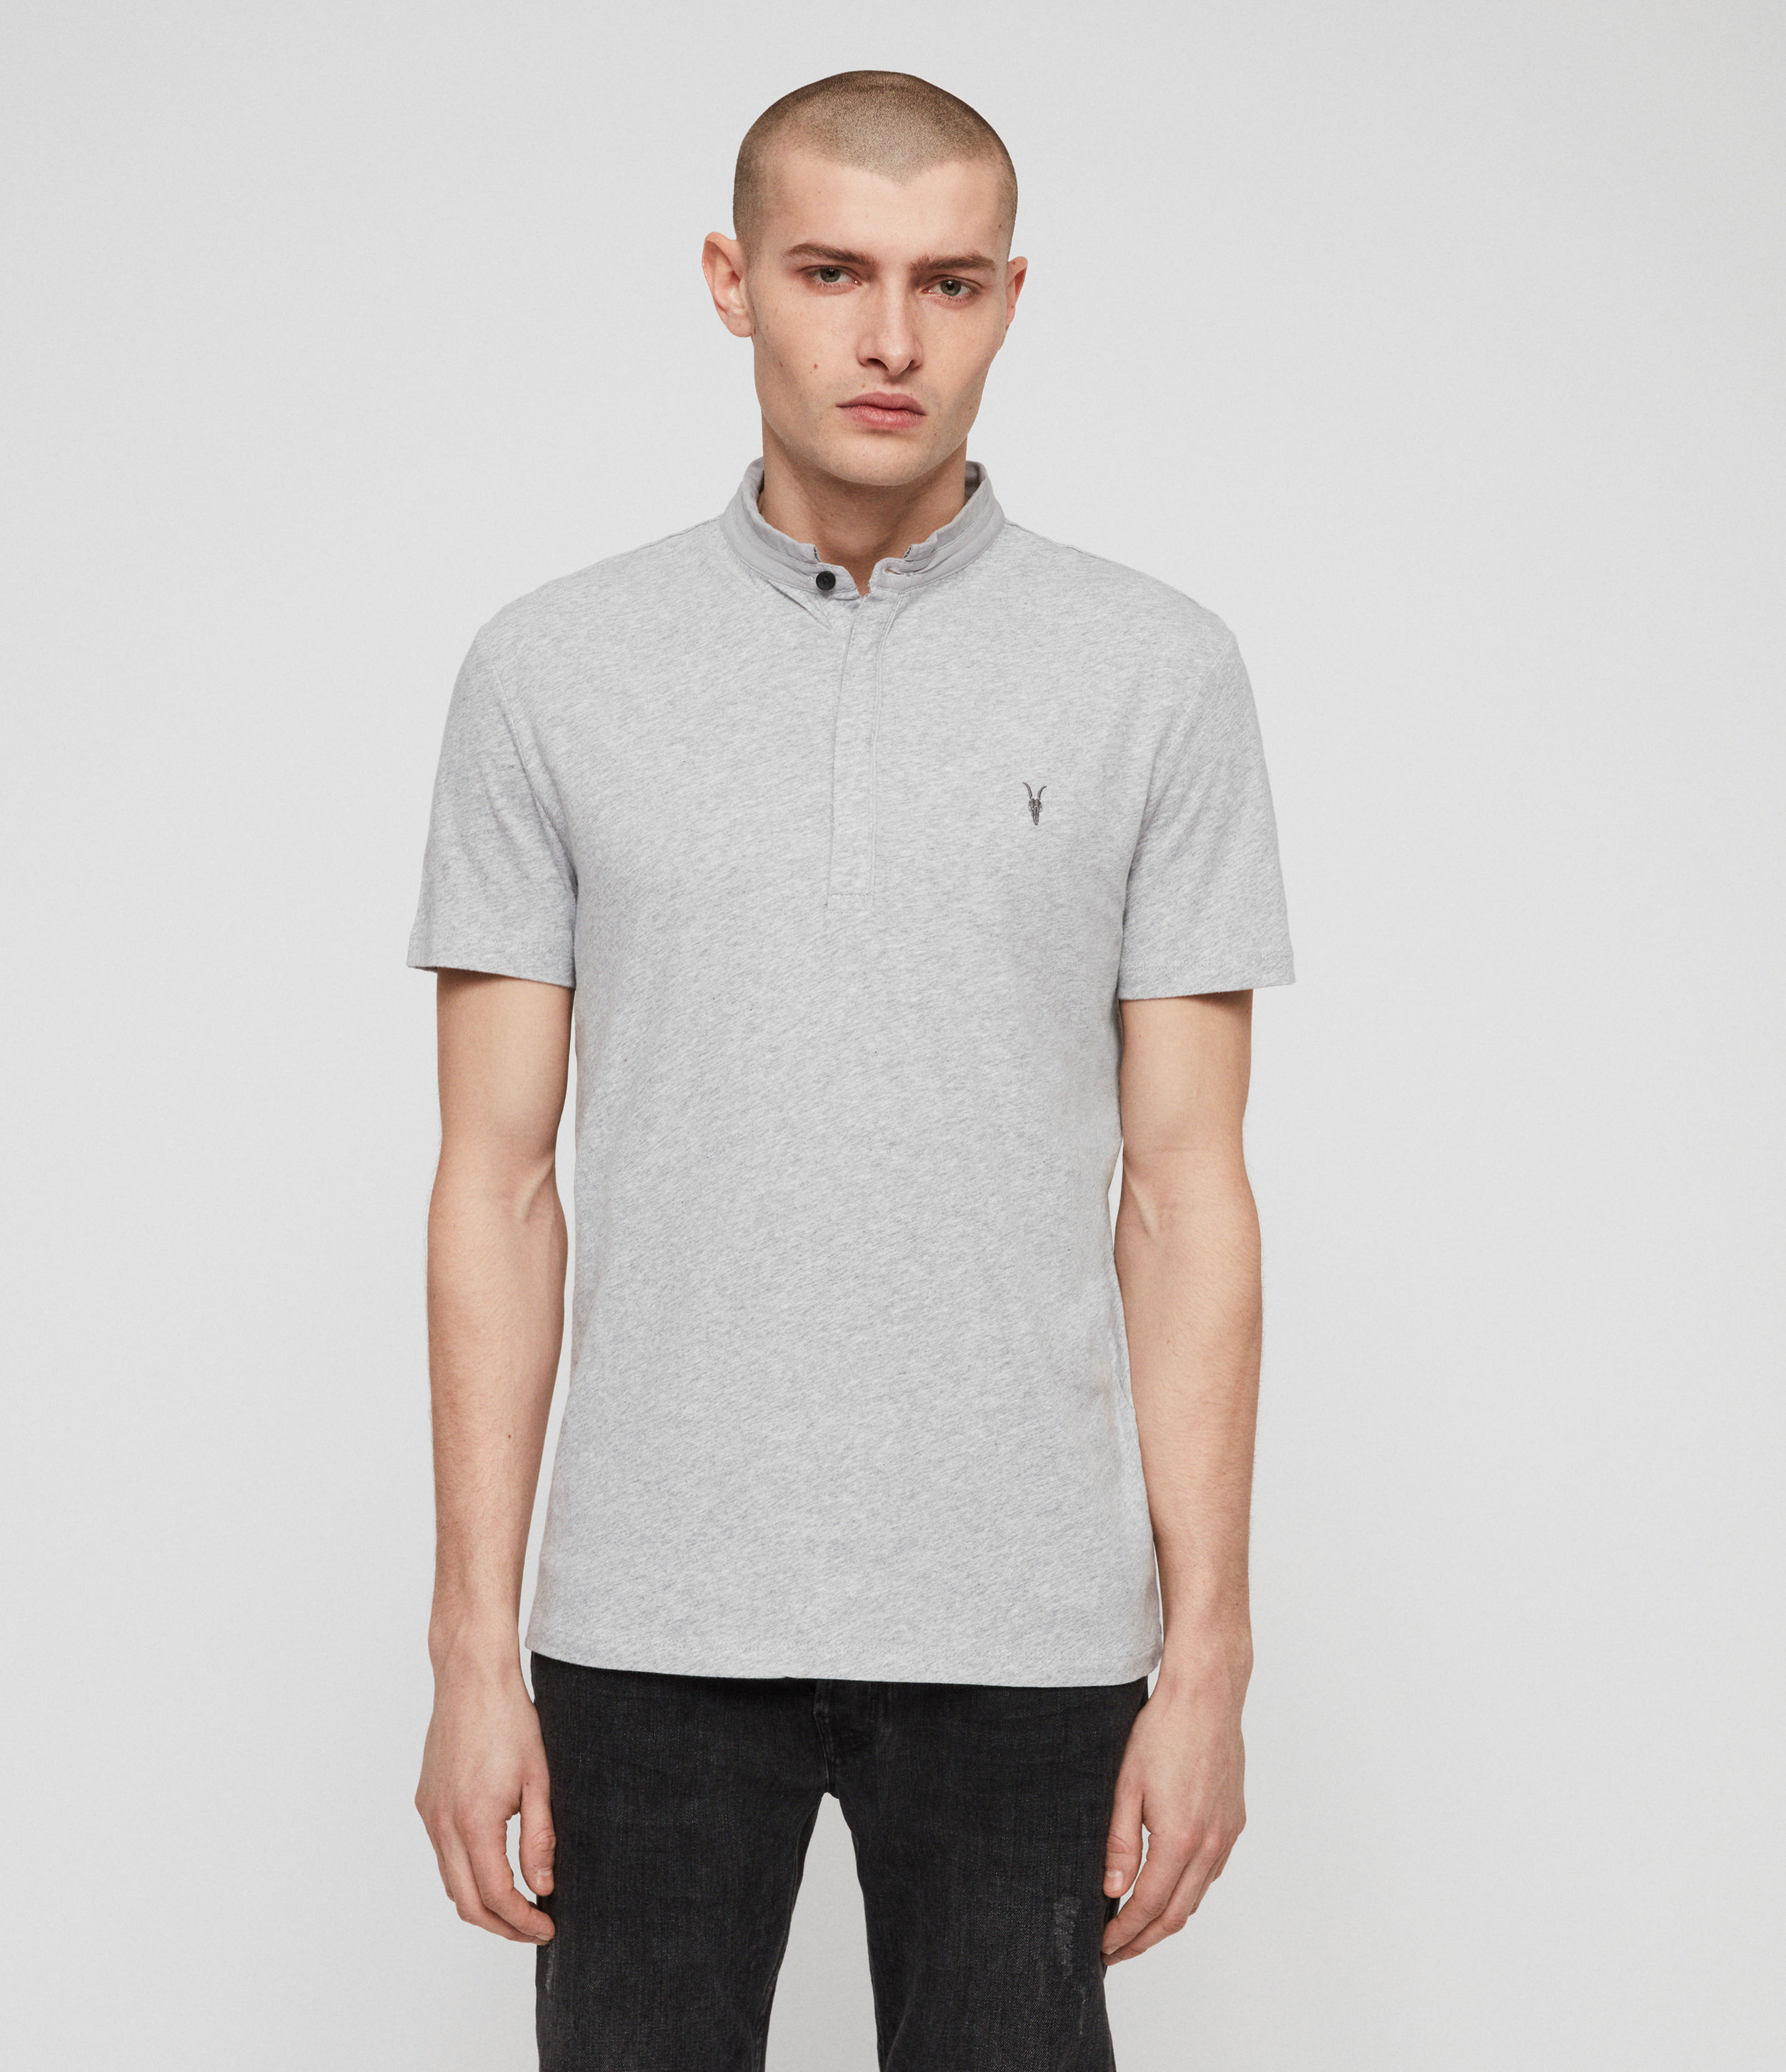 AllSaints Men's Cotton Lightweight Grail Short Sleeve Polo Shirt, Grey, Size: S